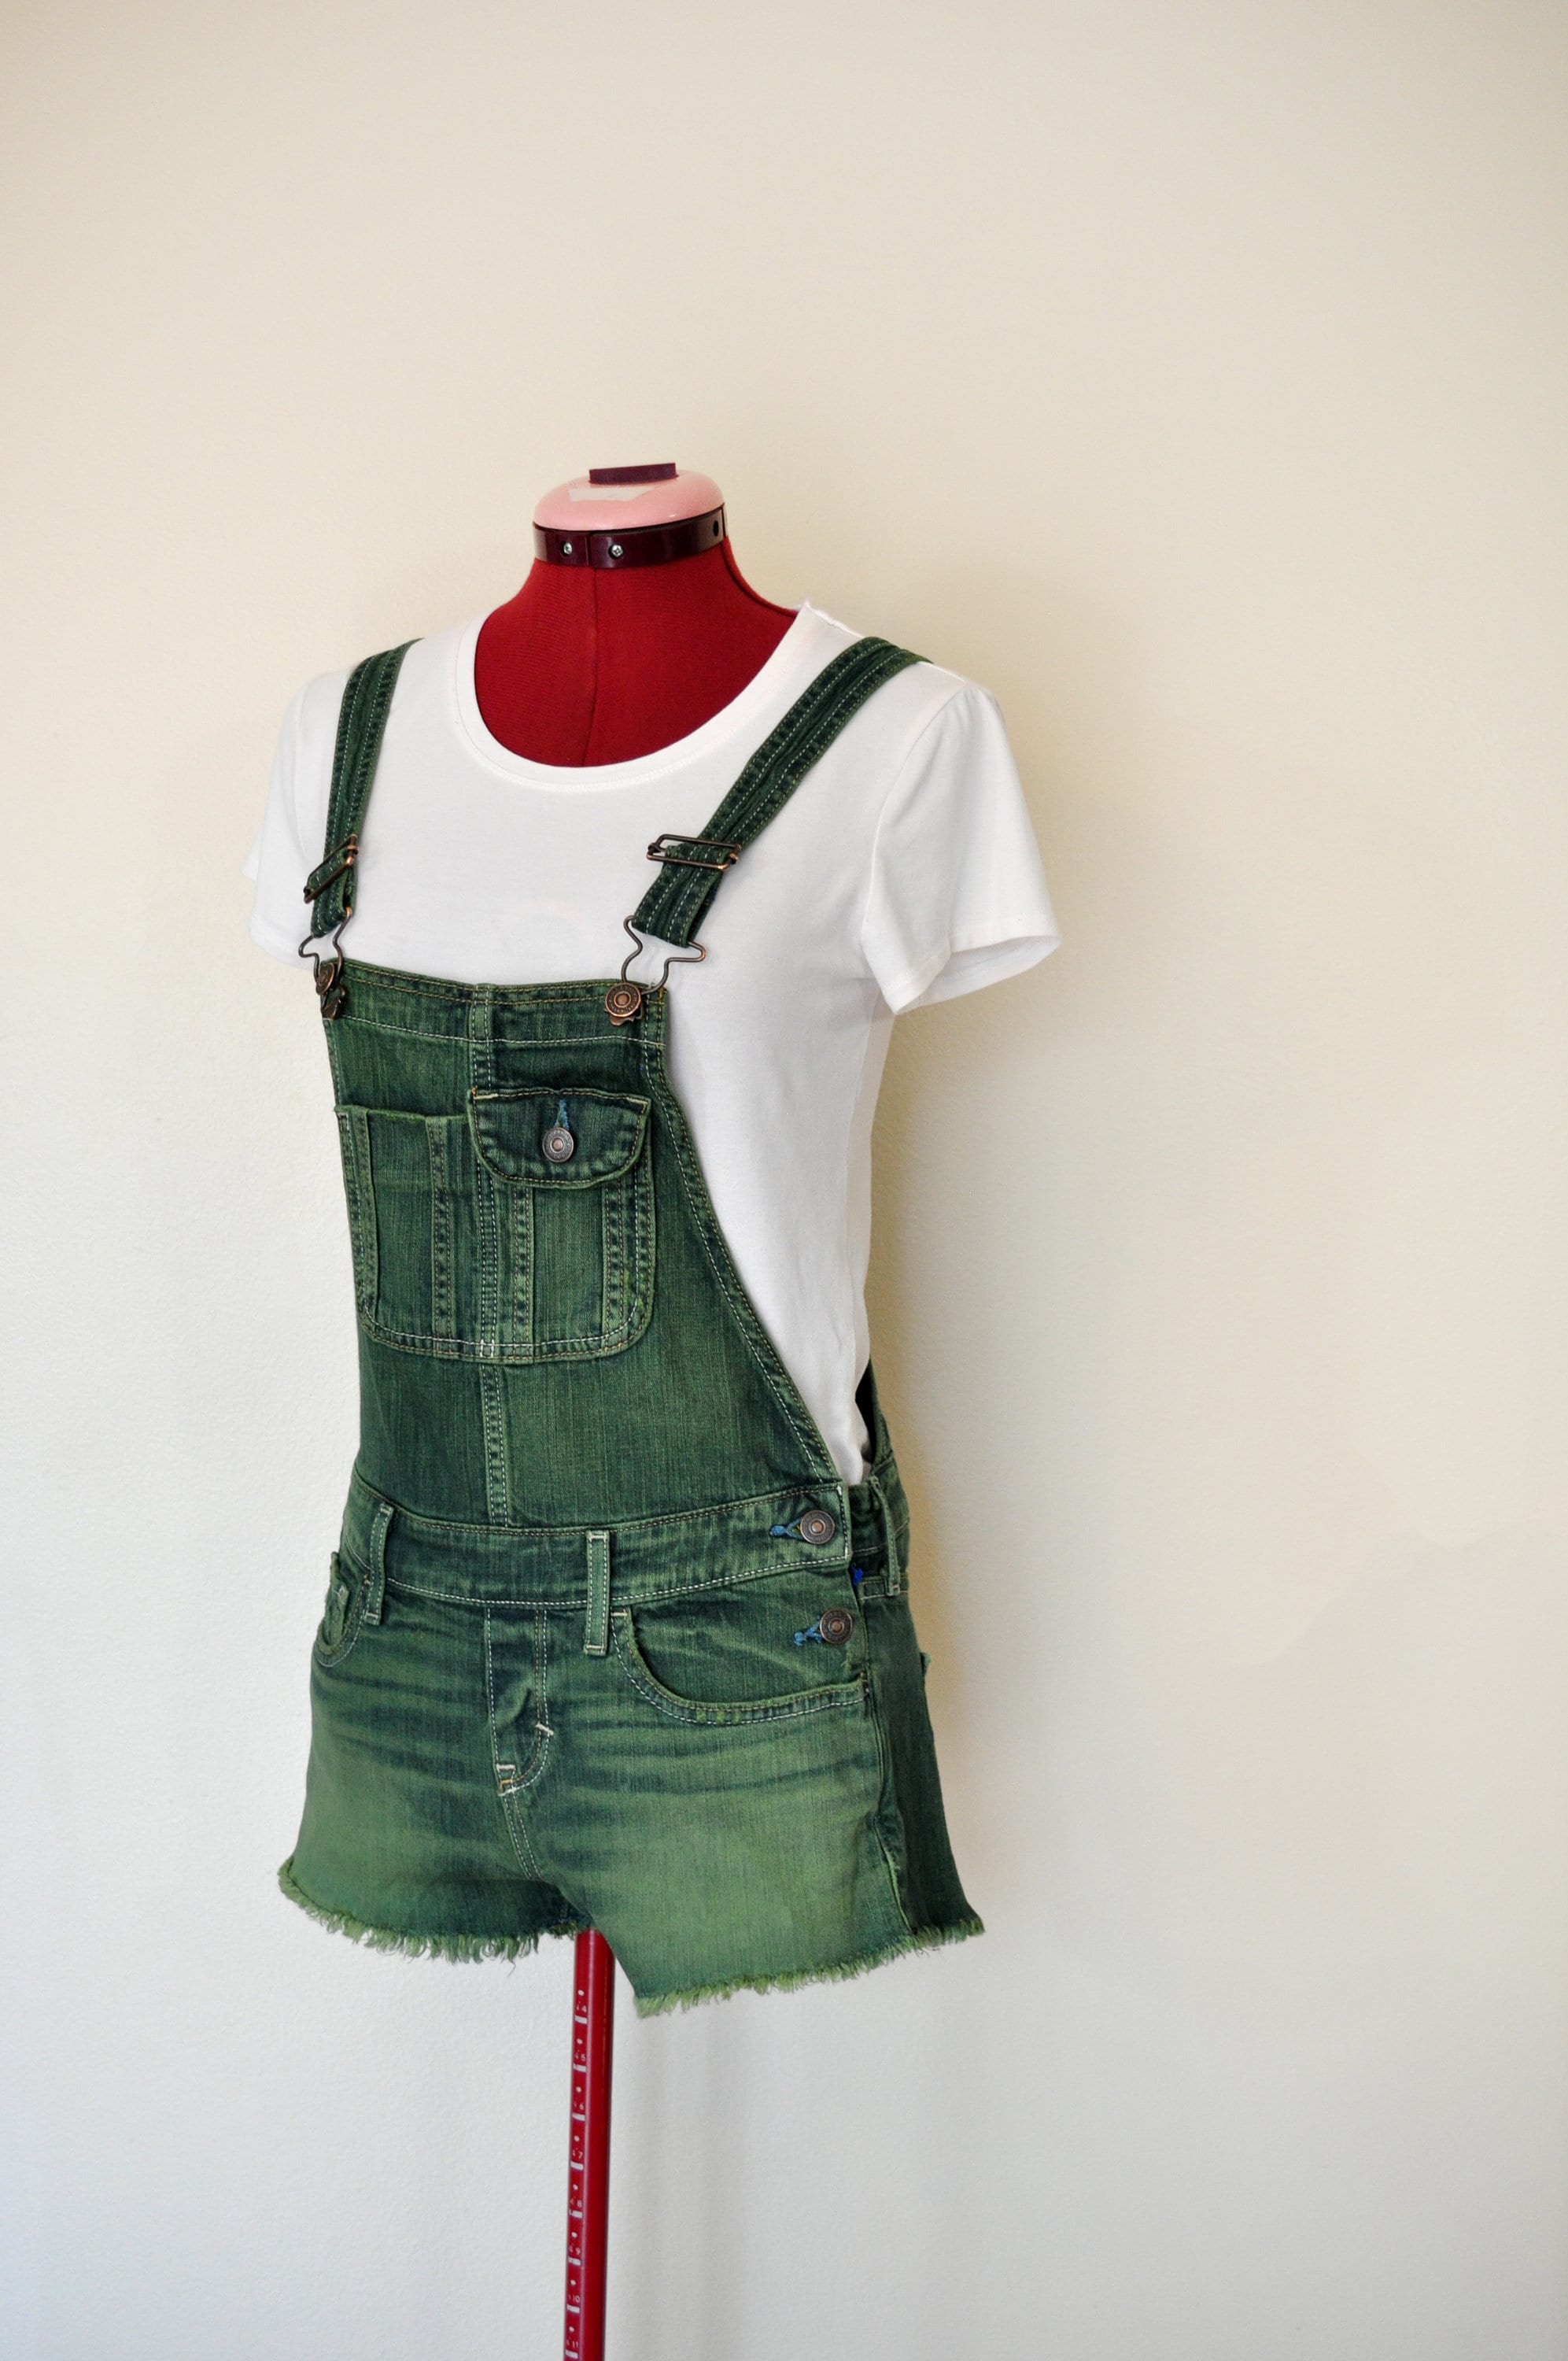 Vintage Overalls & Jumpsuits Green Xs Bib Overall Shorts - Kelly Dyed Upcycled Abercrombie Fitch Cotton Denim Shortall Adult Women Juniors Extra Small  30 Waist $25.00 AT vintagedancer.com